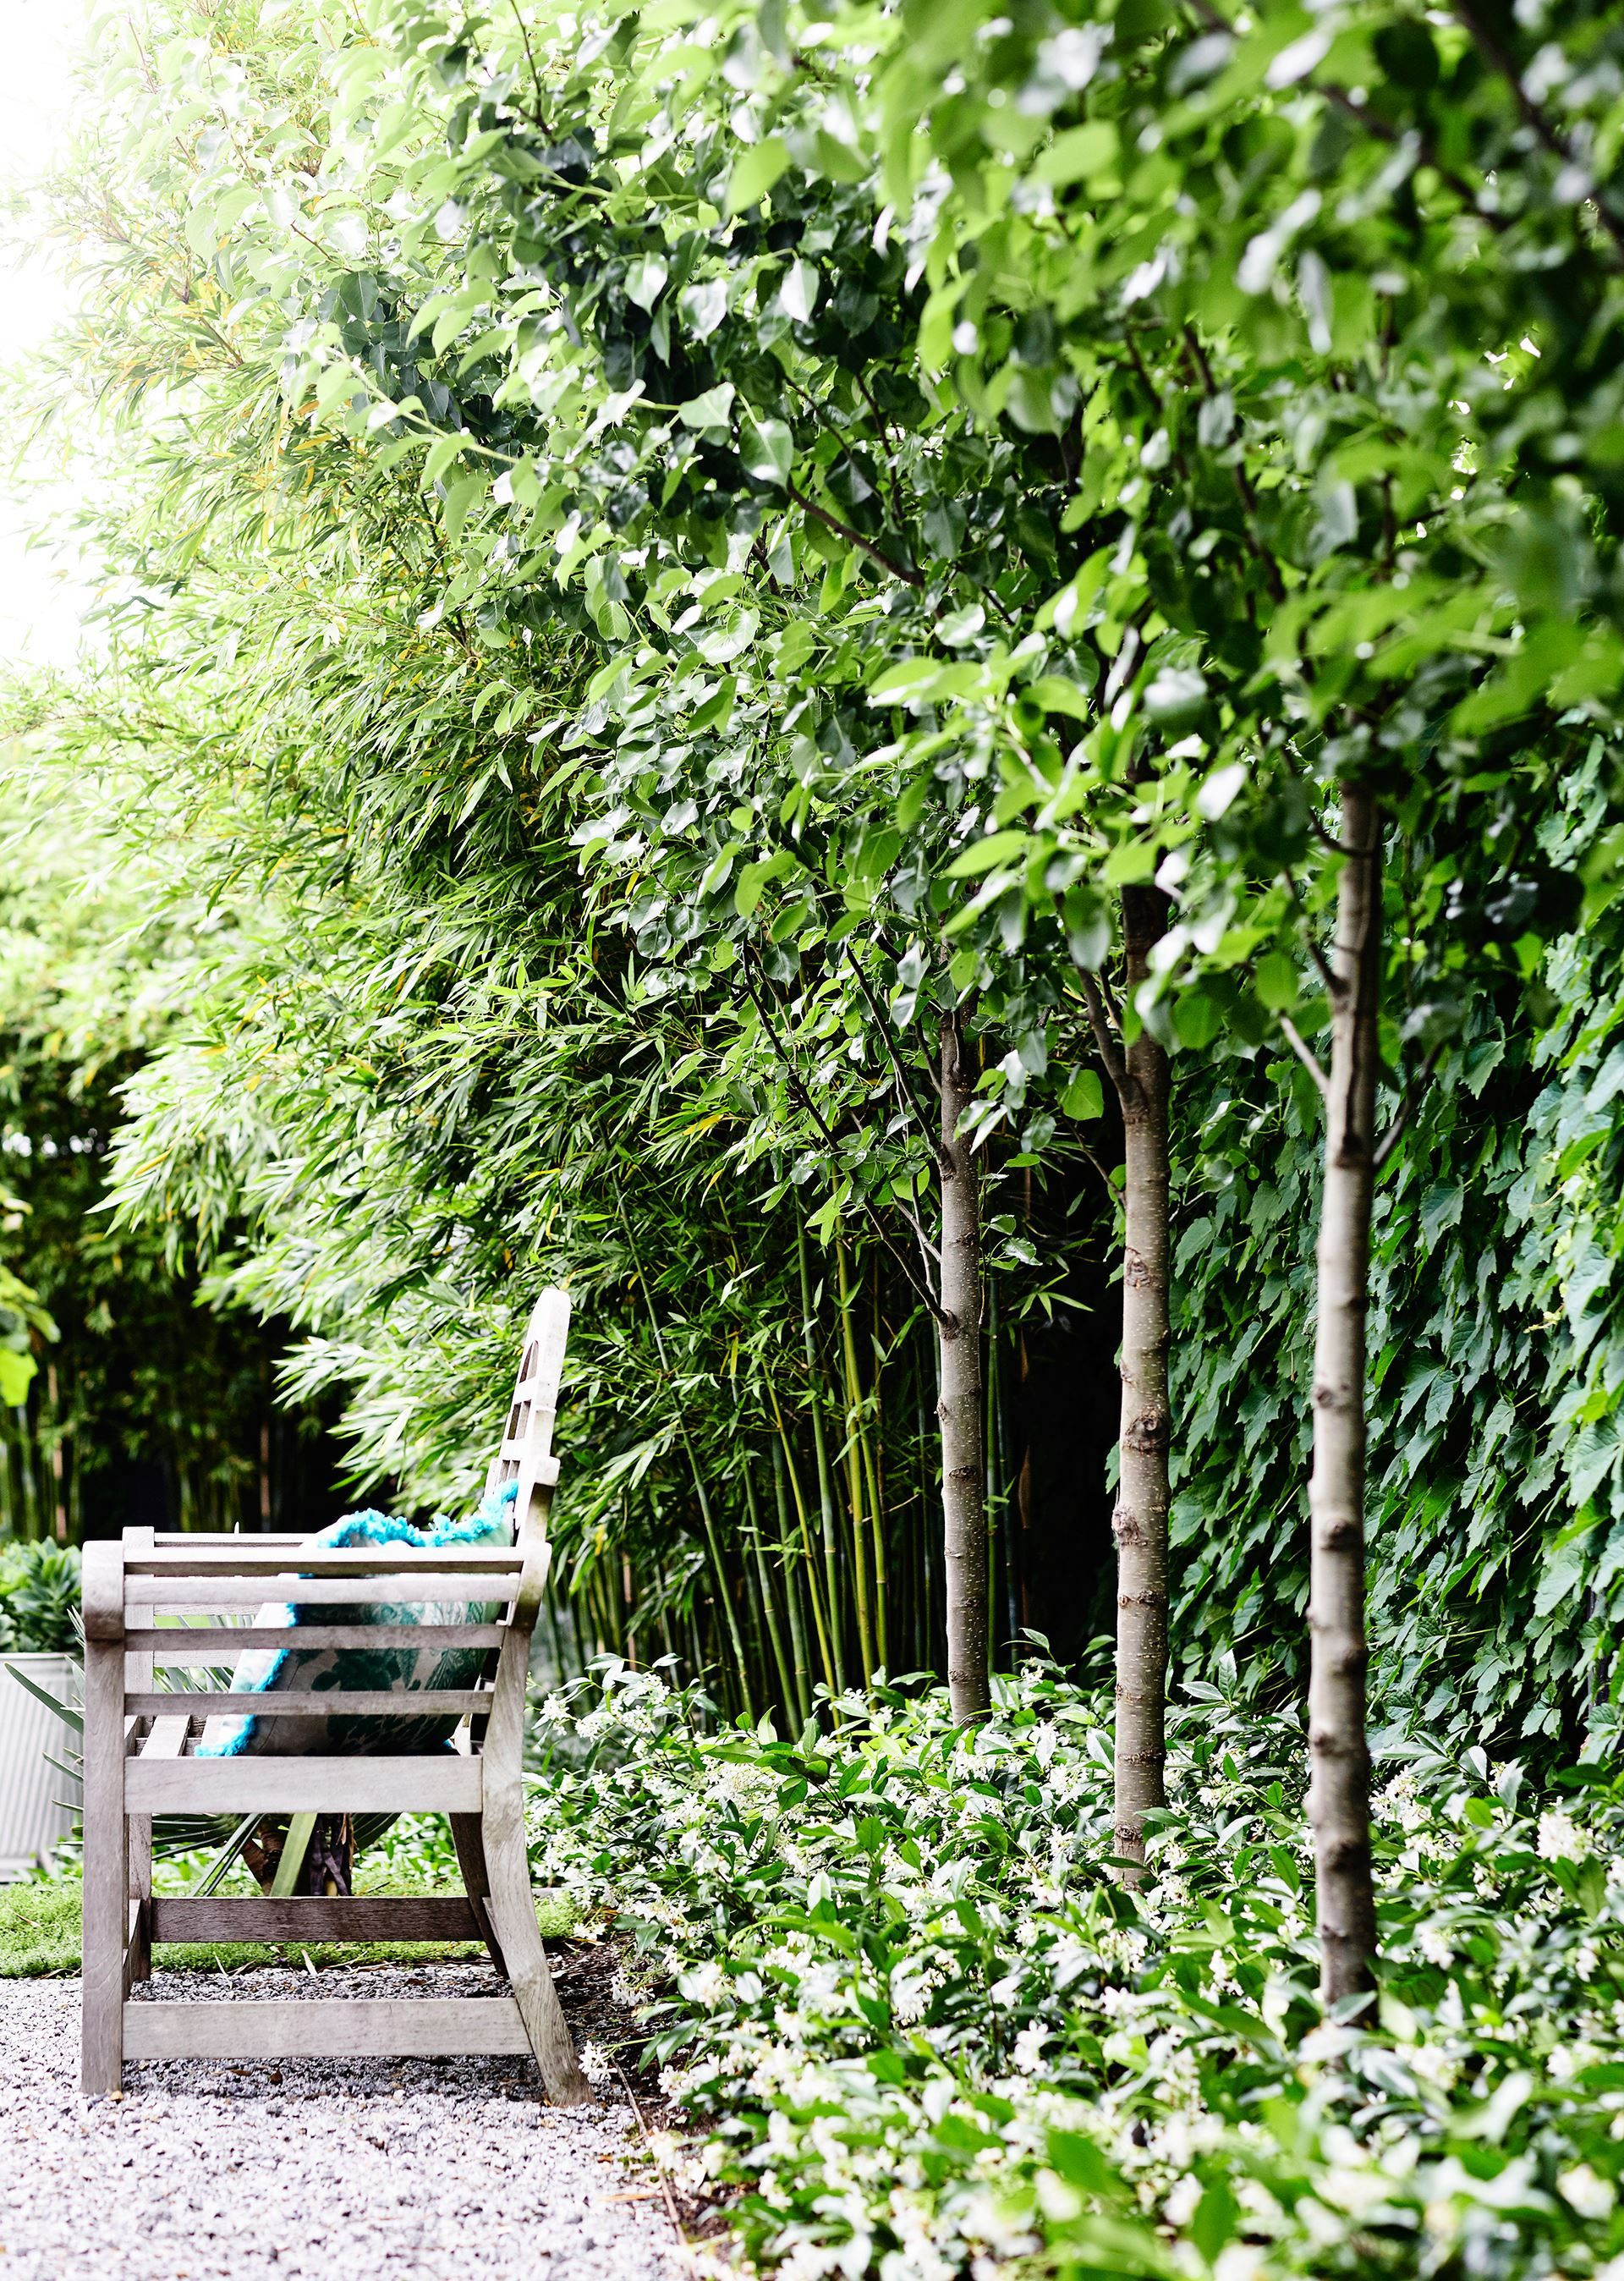 The Fence Is Draped In Boston Ivy Planted 19M Apart,